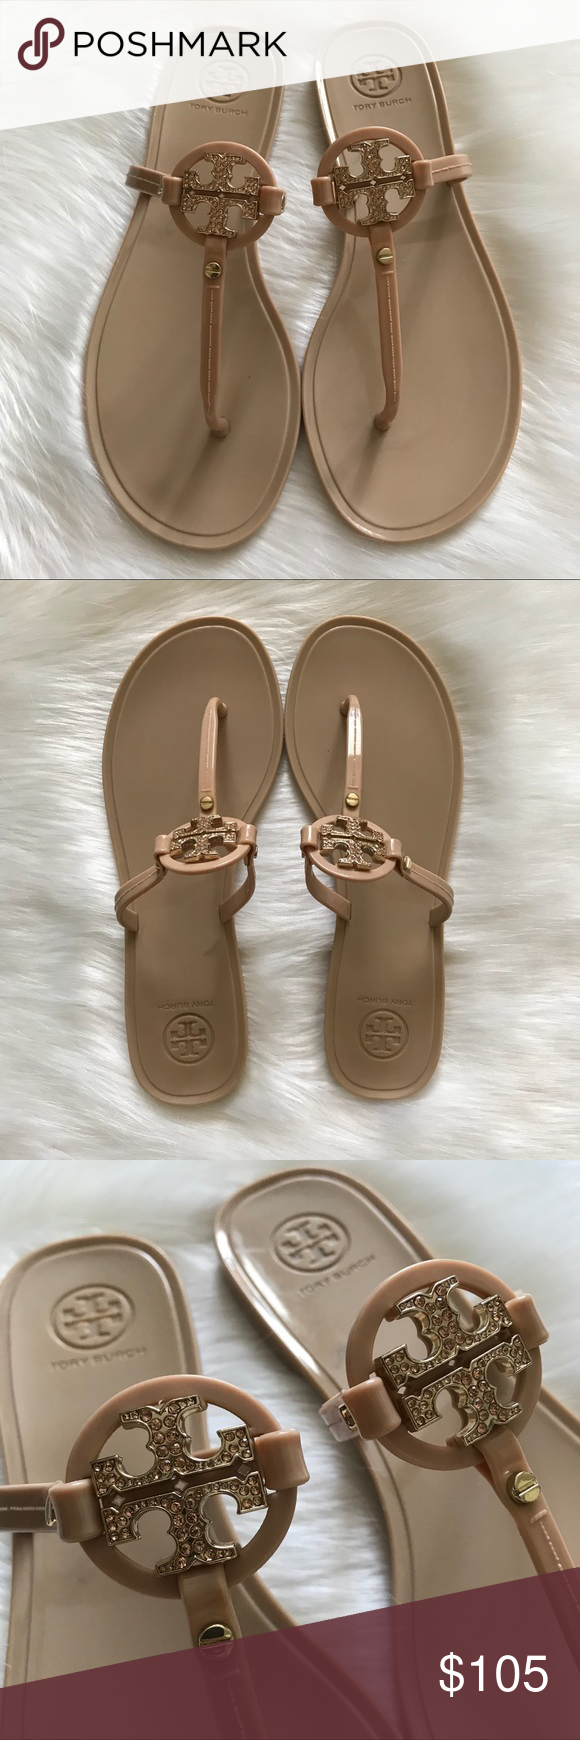 f1b98cfac2290a TORY BURCH Mini Miller Crystal Flat Thong Sandal Authentic Mini Miller Flat  Thong Sandal Blush.